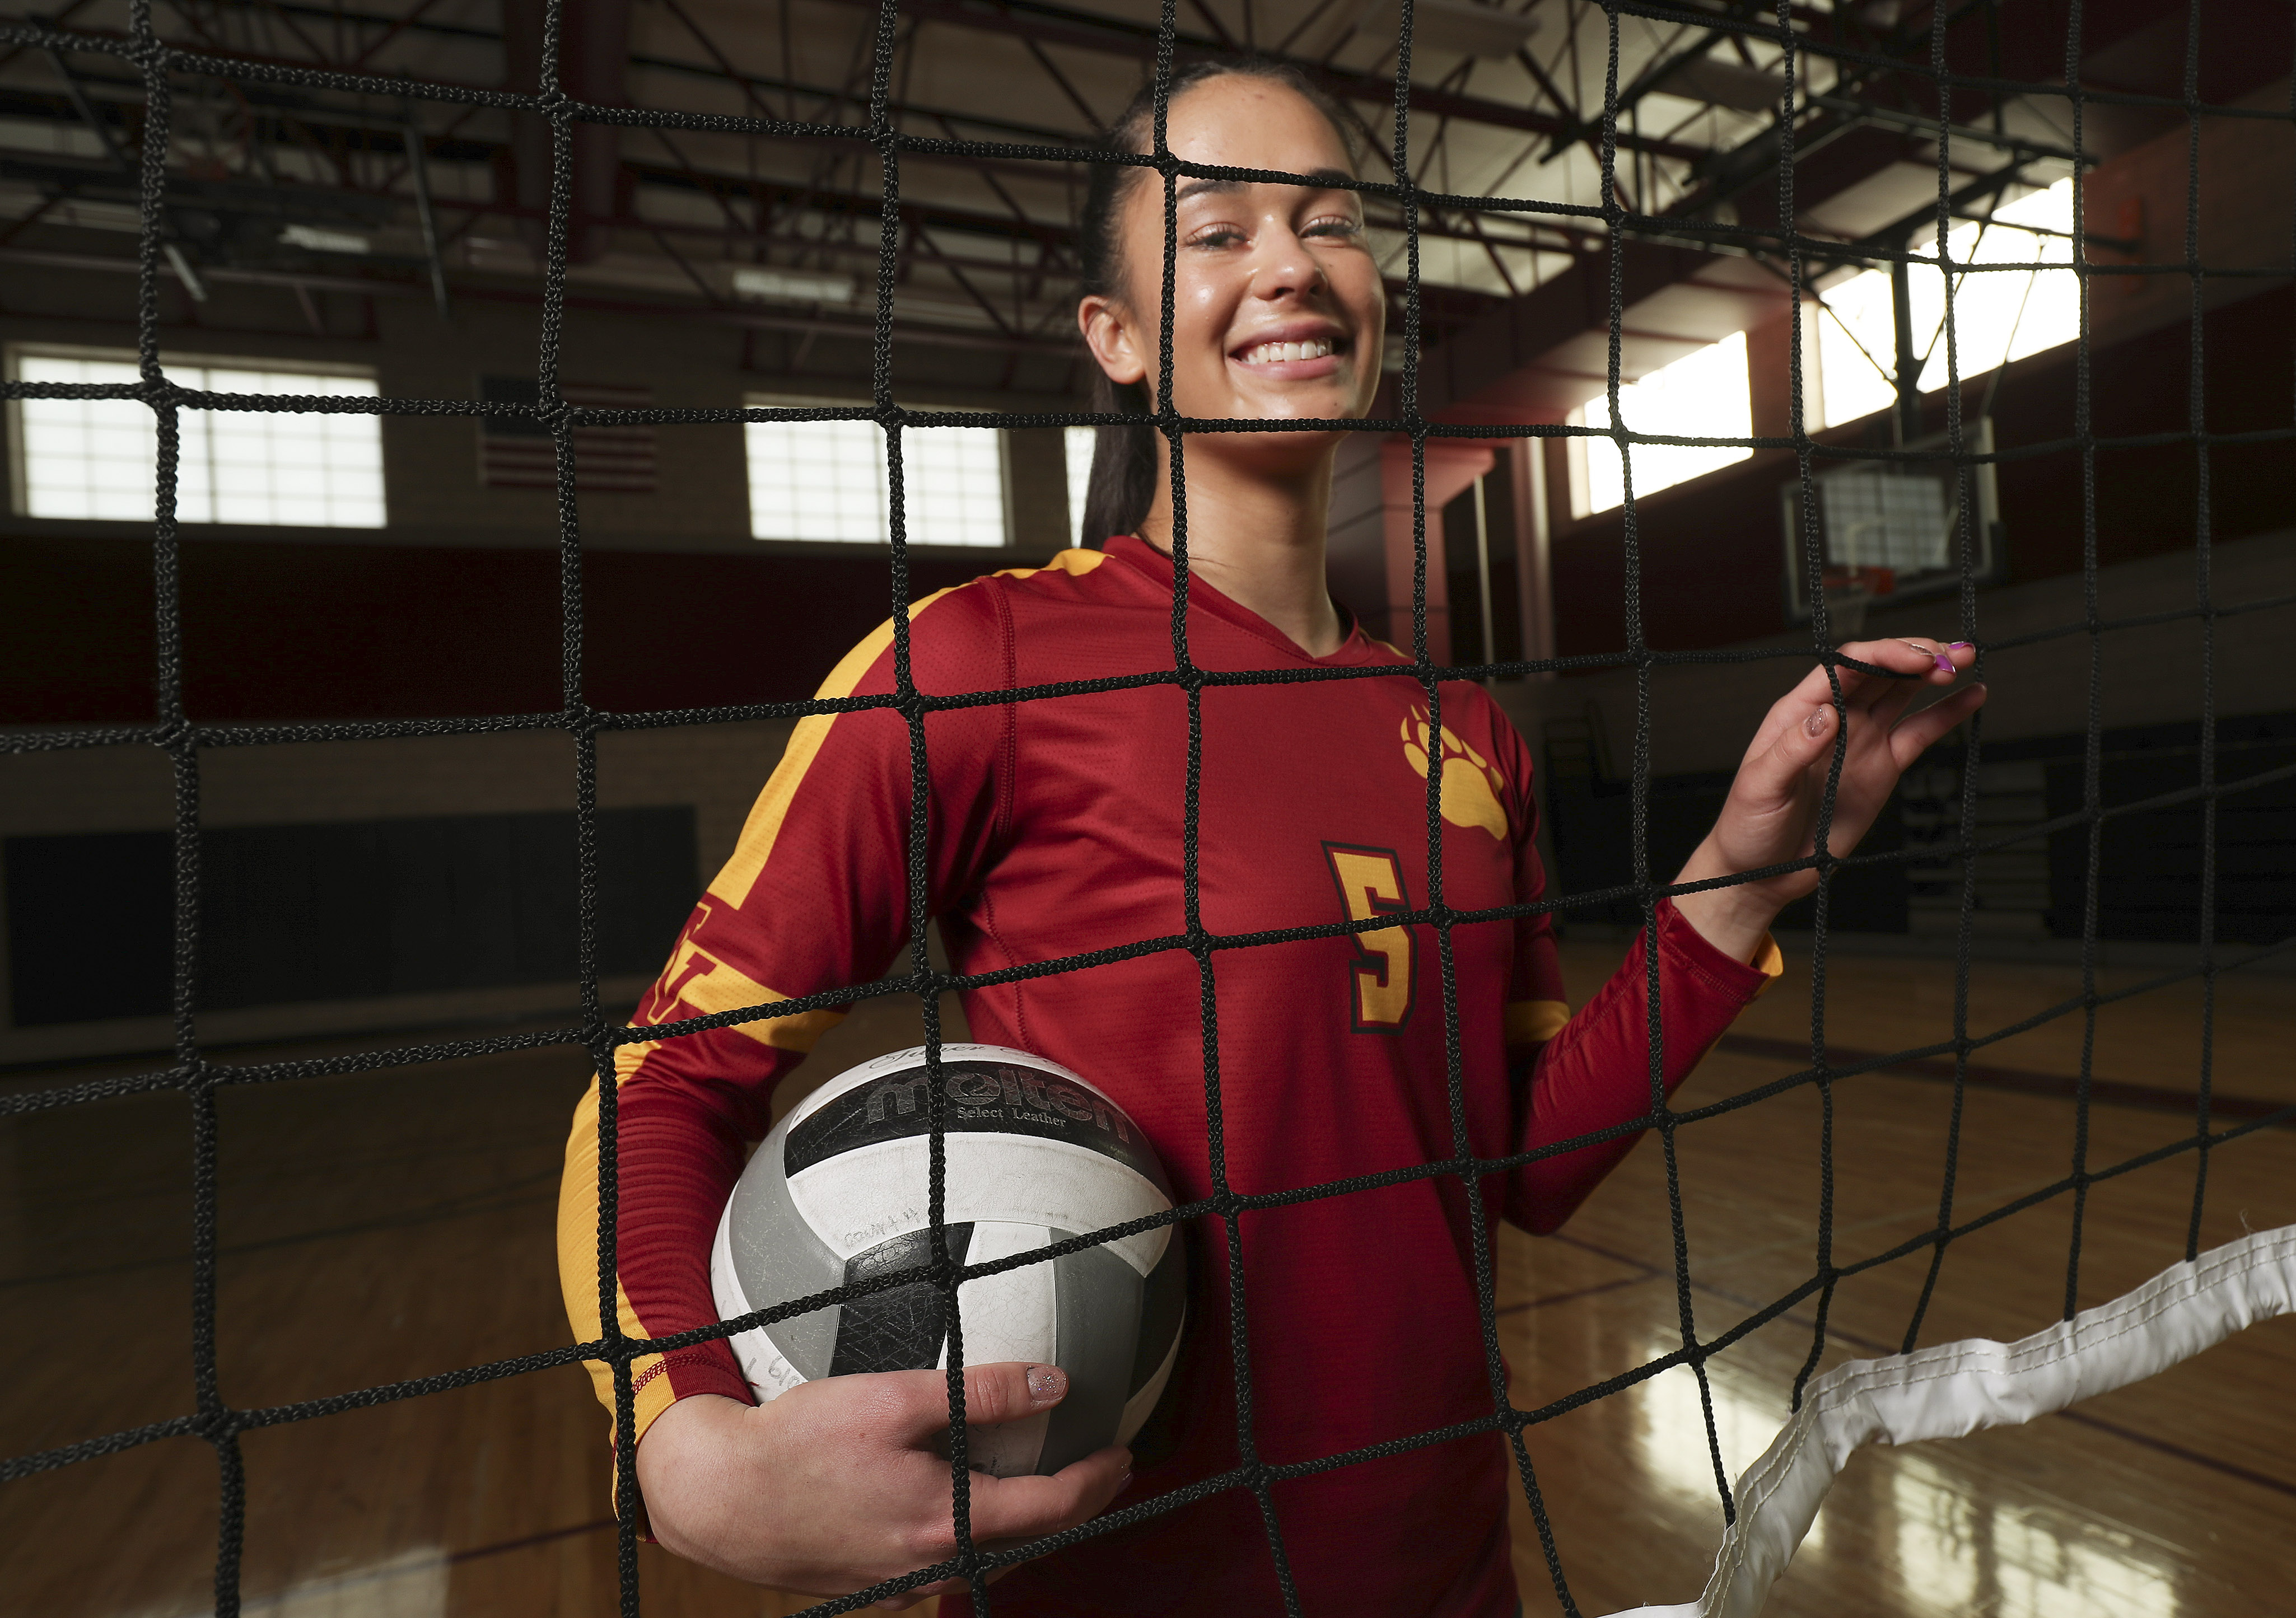 Mountain View High School's Mia Wesley, pictured in Orem on Wednesday, Dec. 4, 2019, is the Deseret News Ms. Volleyball honoree for 2019.